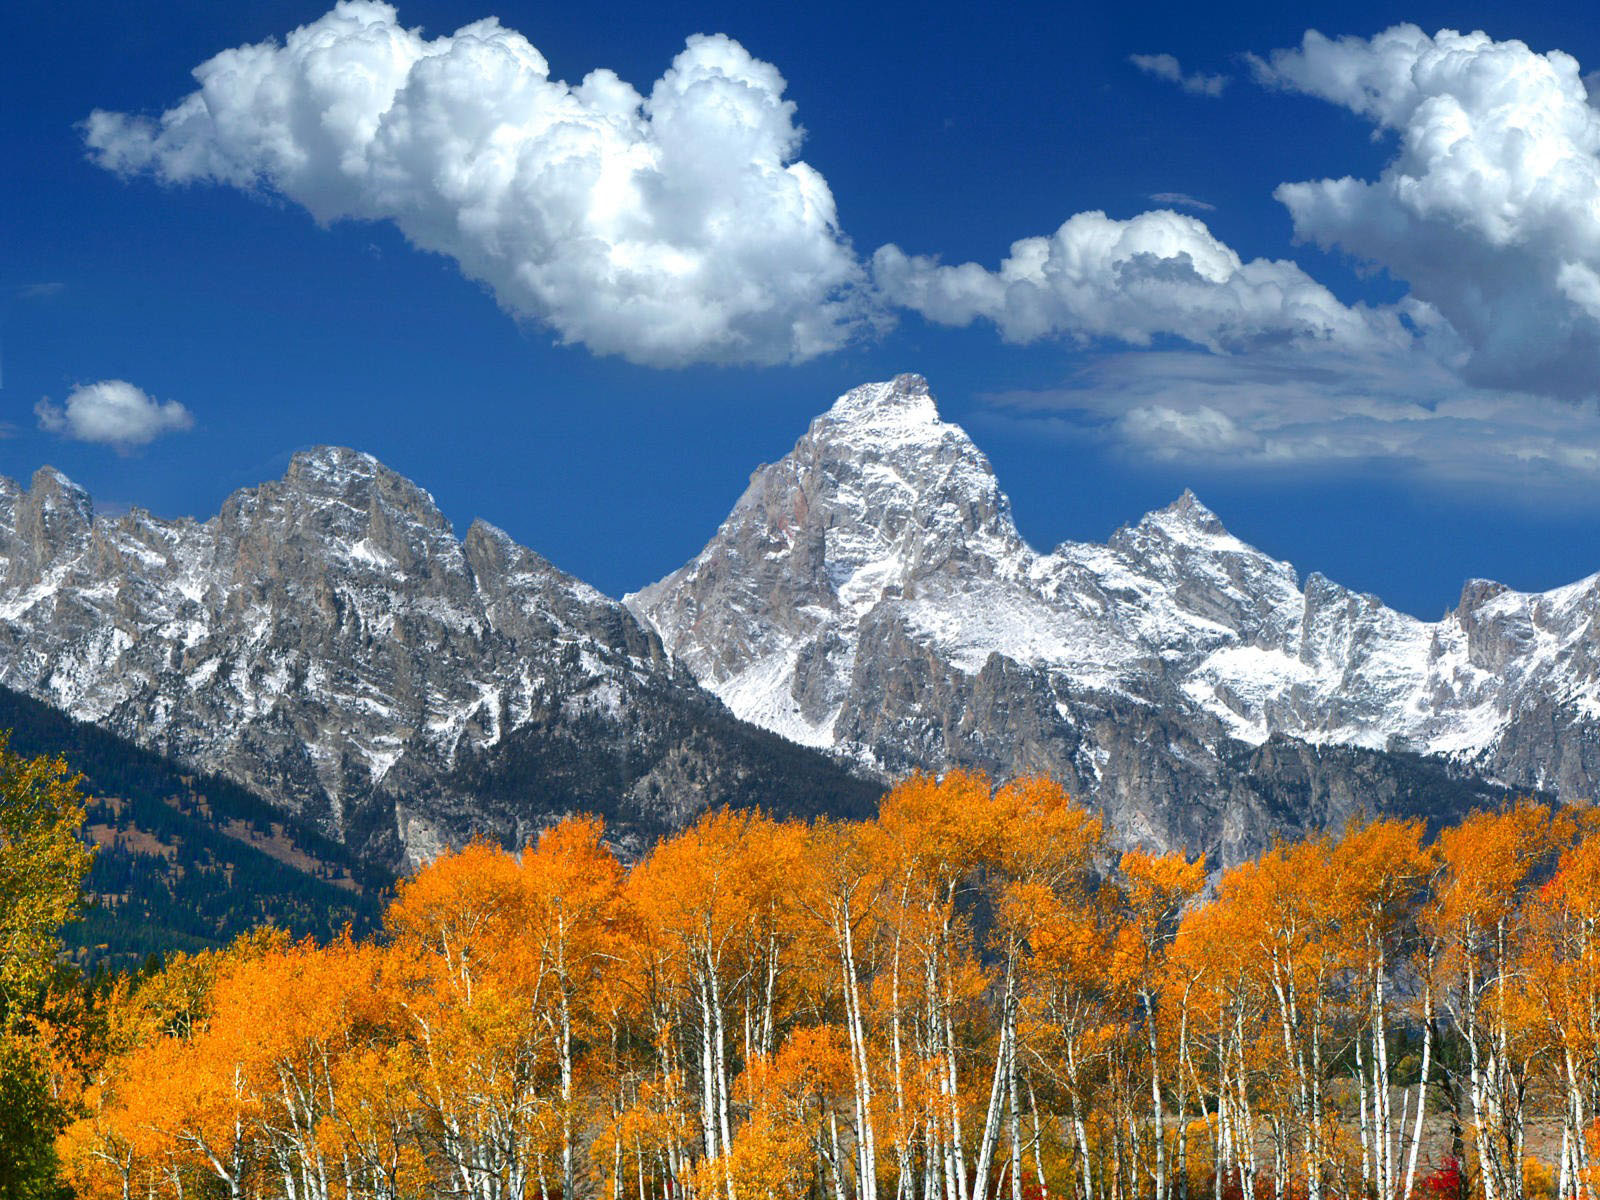 Free Wallpapers Of Cars And Bikes For Desktop Wallpapers Grand Teton National Park Wallpapers